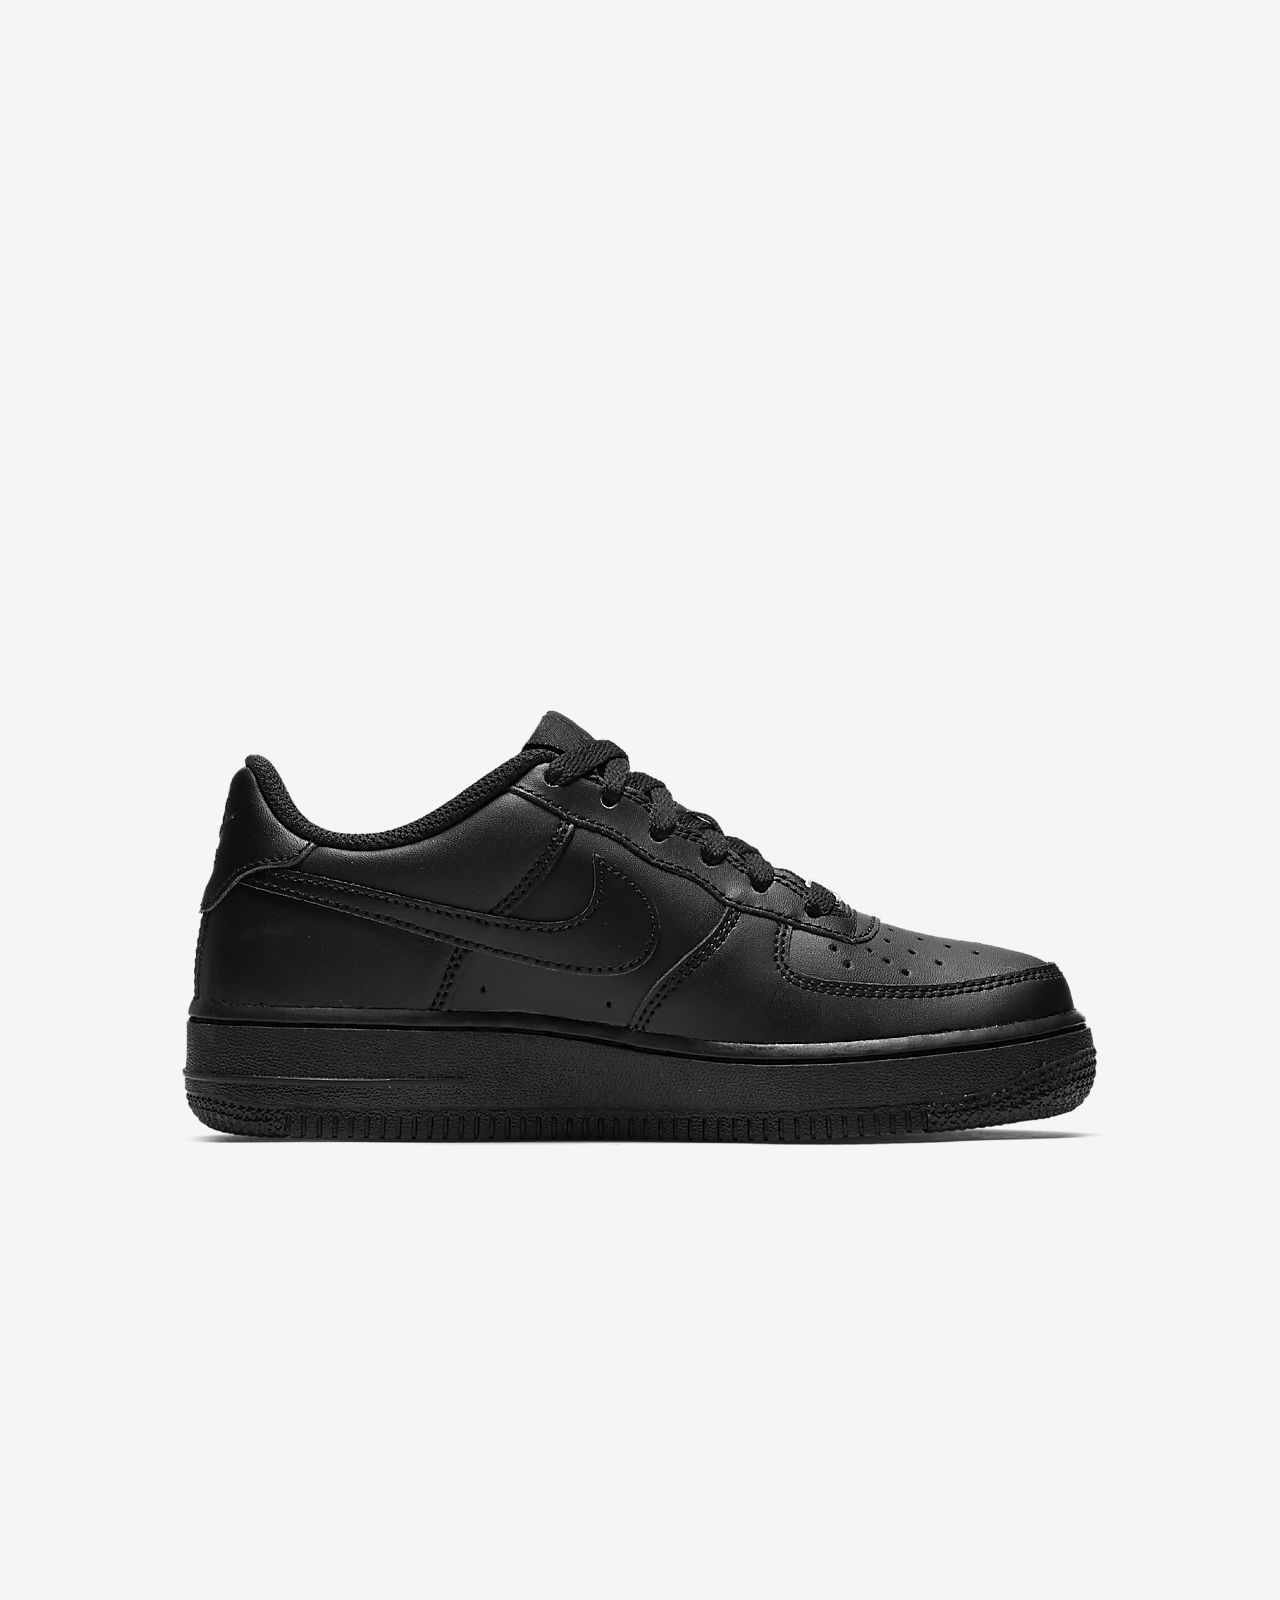 san francisco 694ae 689a9 Older Kids  Shoe. Nike Air Force 1